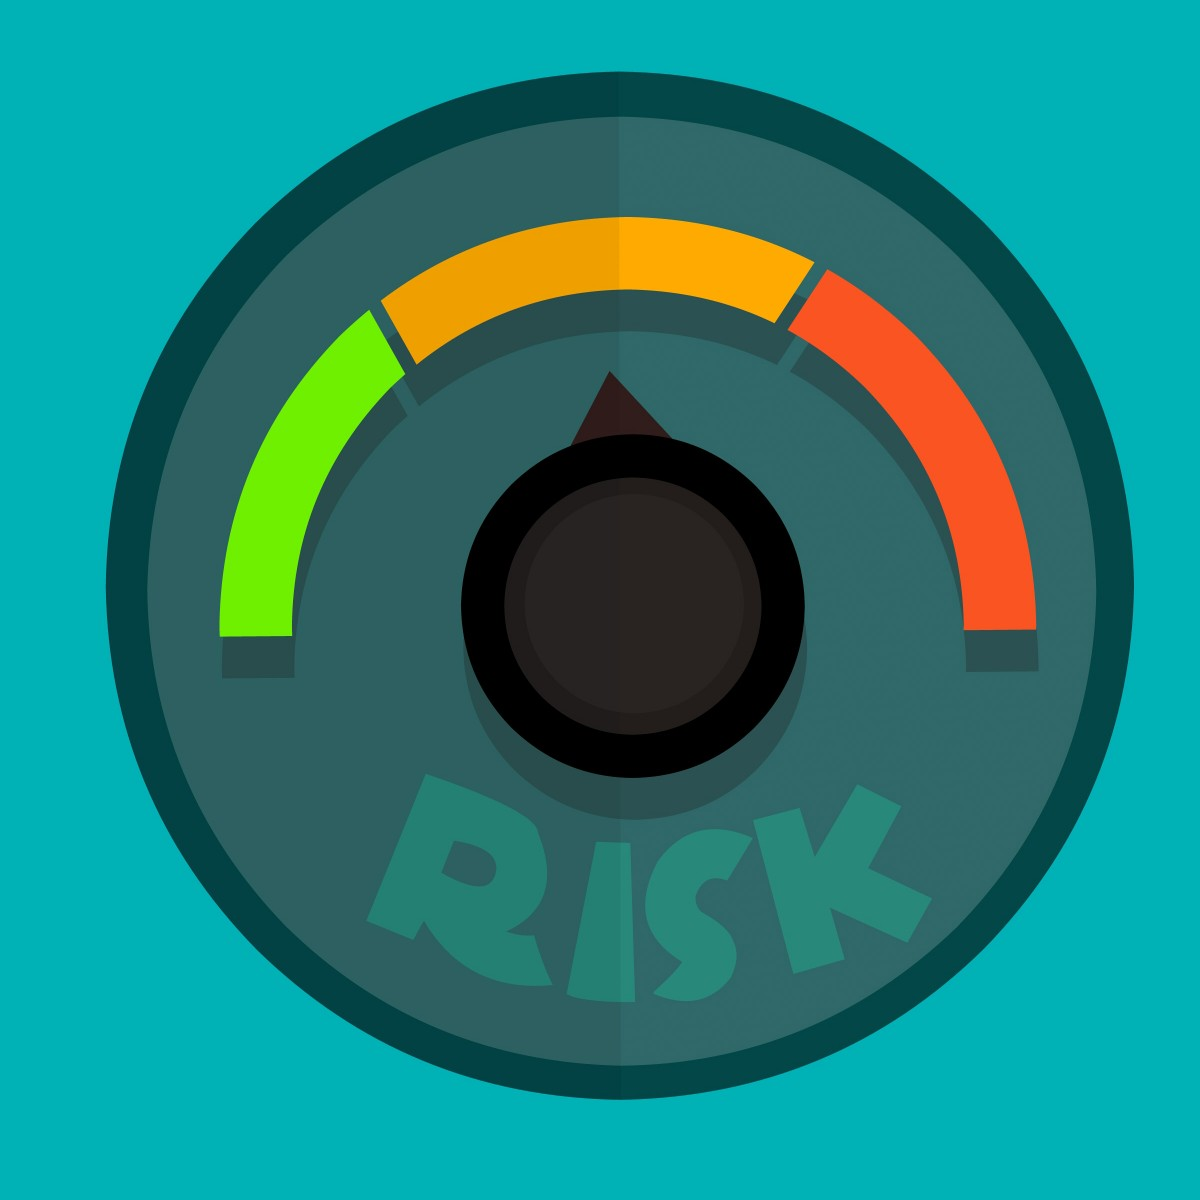 Whats your risk level?